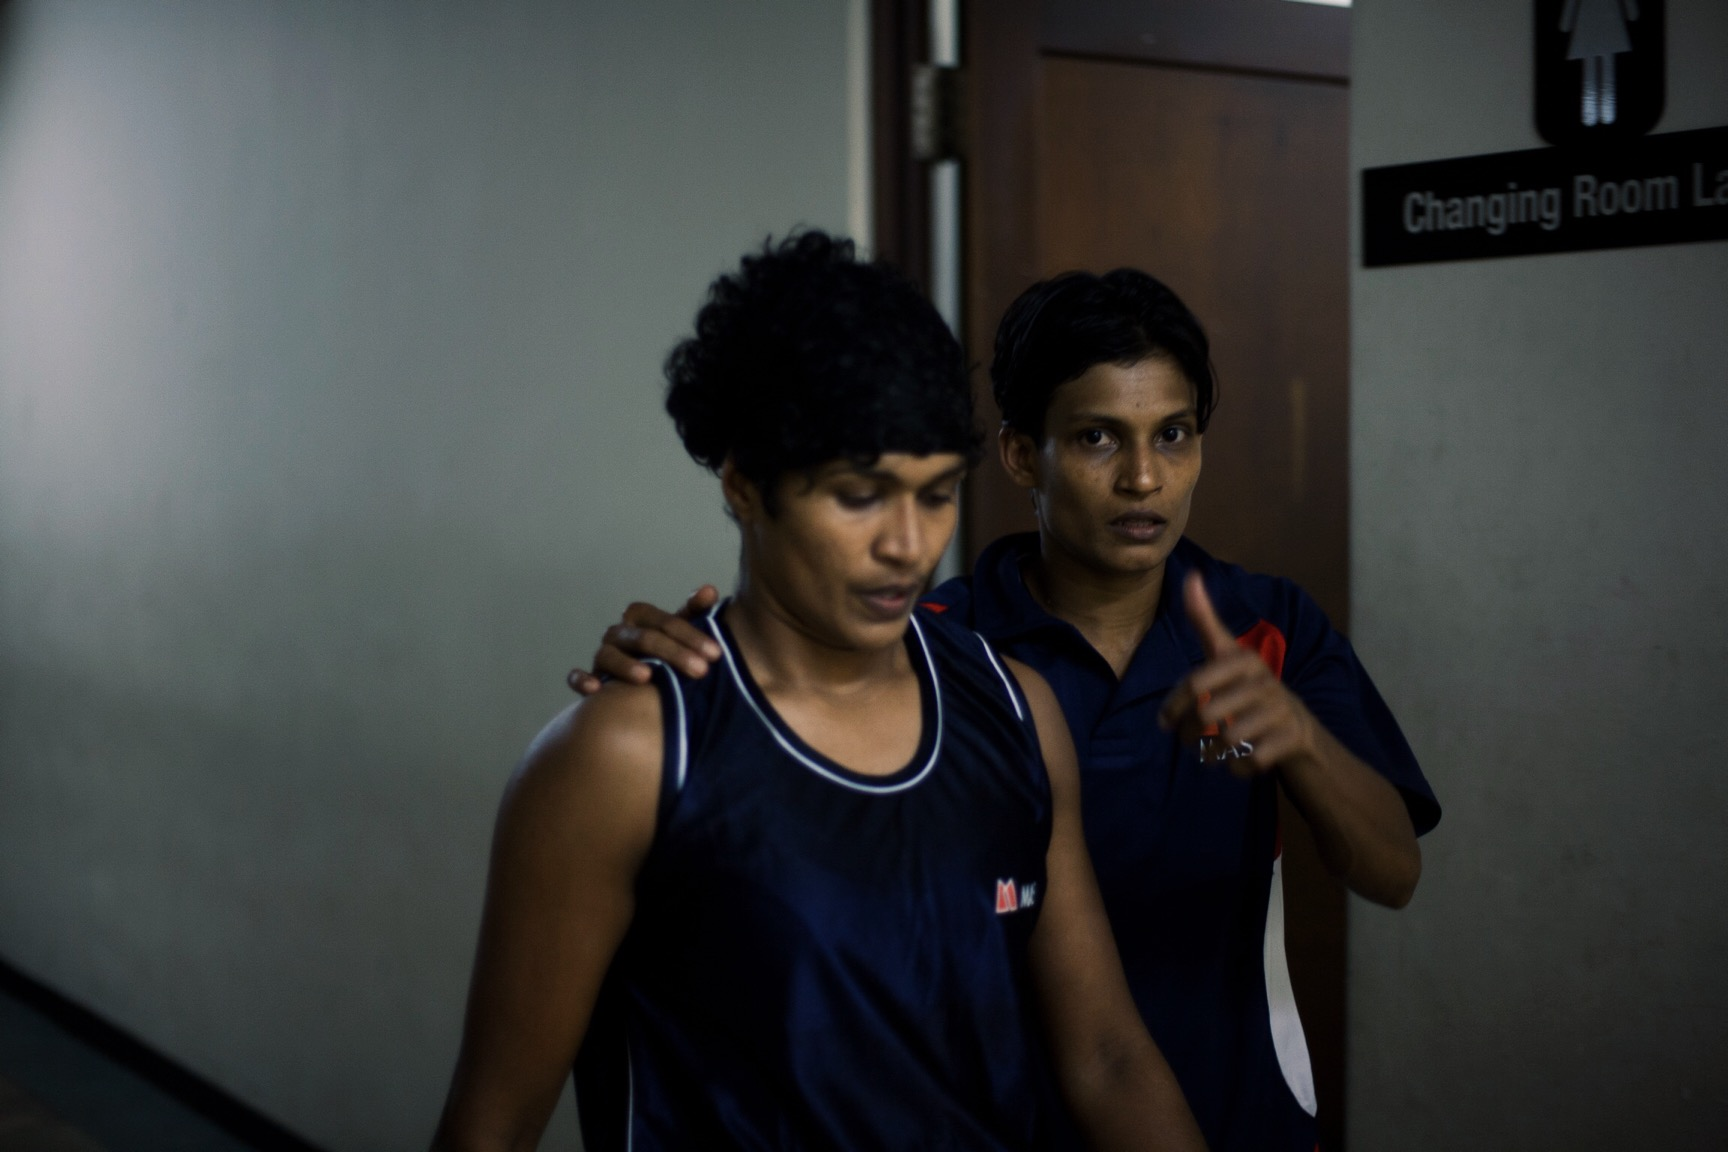 Nilmini Jayasighe escorted to ring by Anusha Kodituwakku (© Lee Bazalgette)